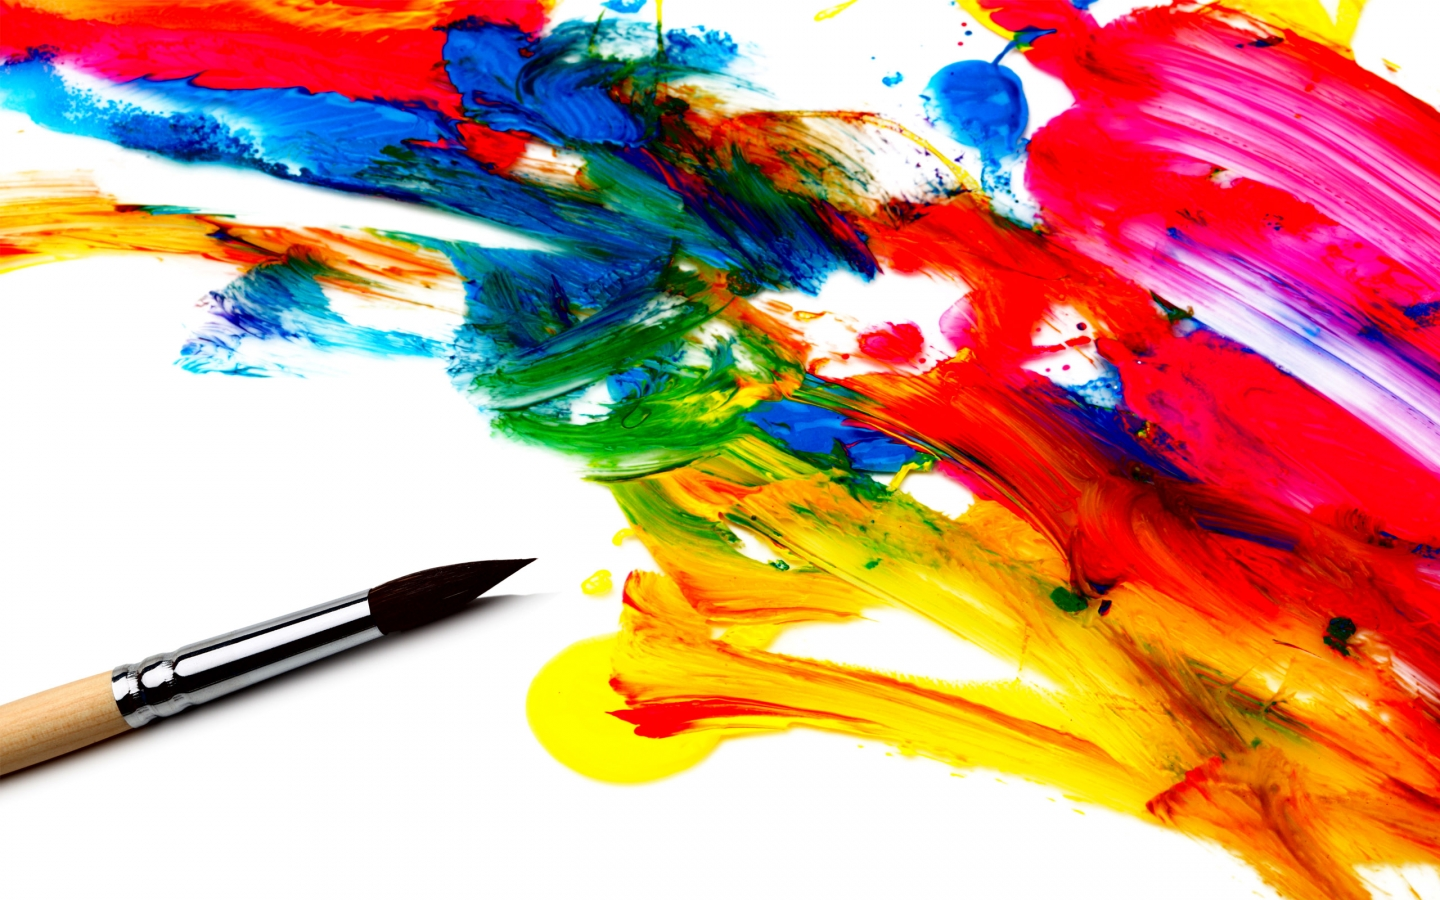 Abstract Paint Brush Wallpaper PC